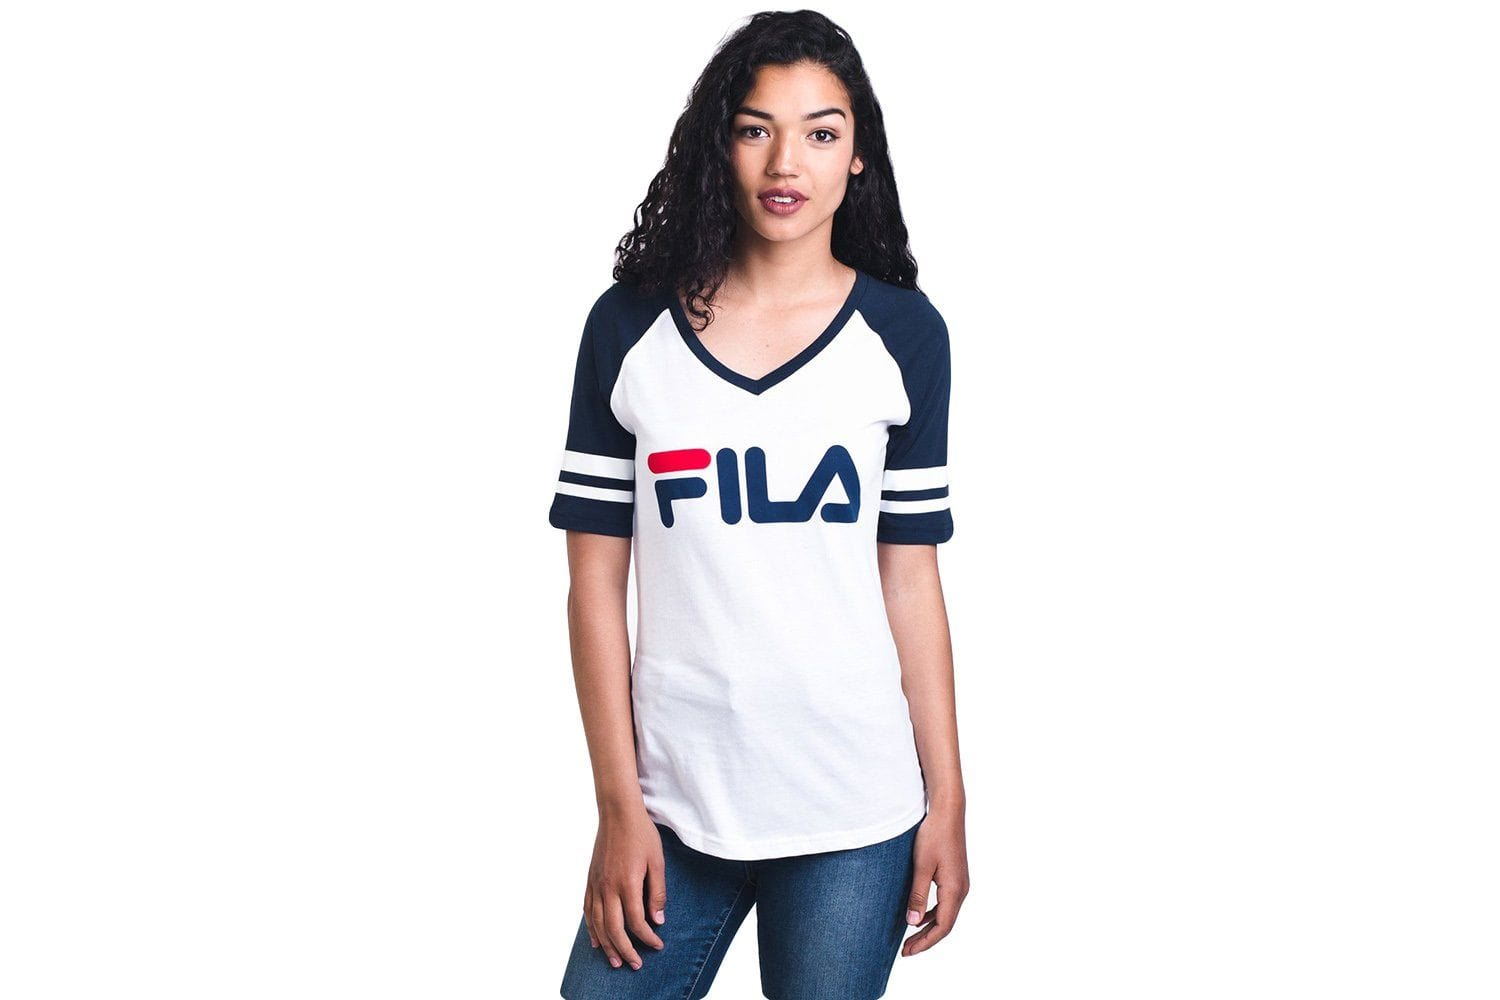 BASEBALL V NECK TEE- LW811892-101 WOMENS SOFTGOODS FILA WHITE/ ROYB S